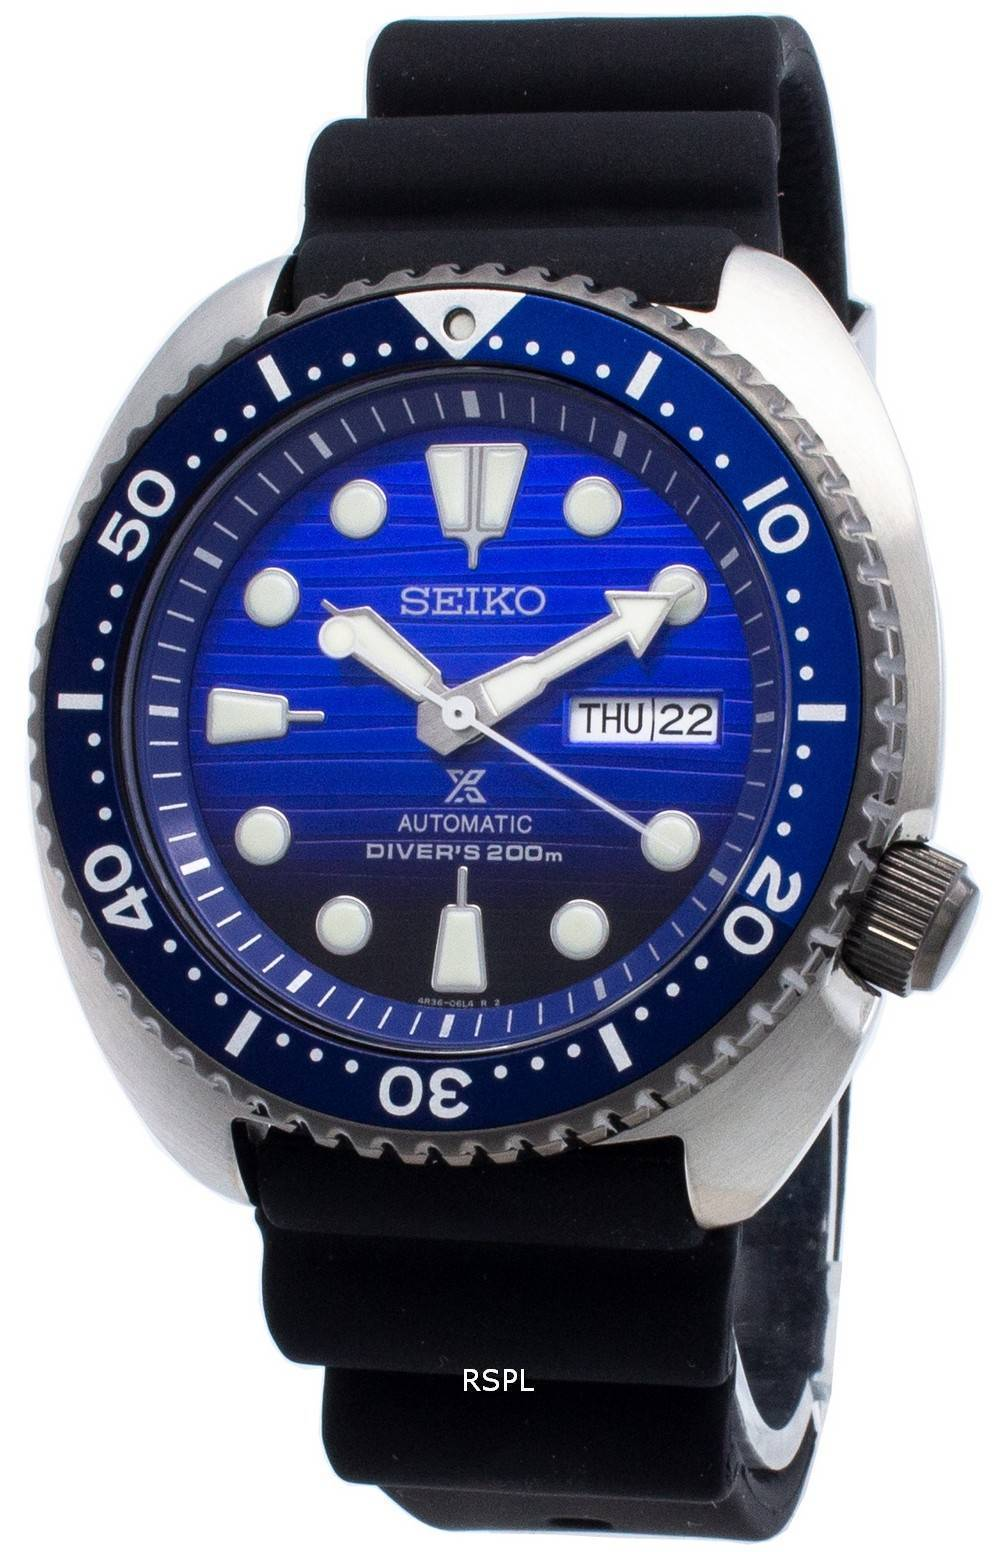 Seiko Automatic Diver's SRPC91 SRPC91K1 SRPC91K Special Edition 200M Men's Watch